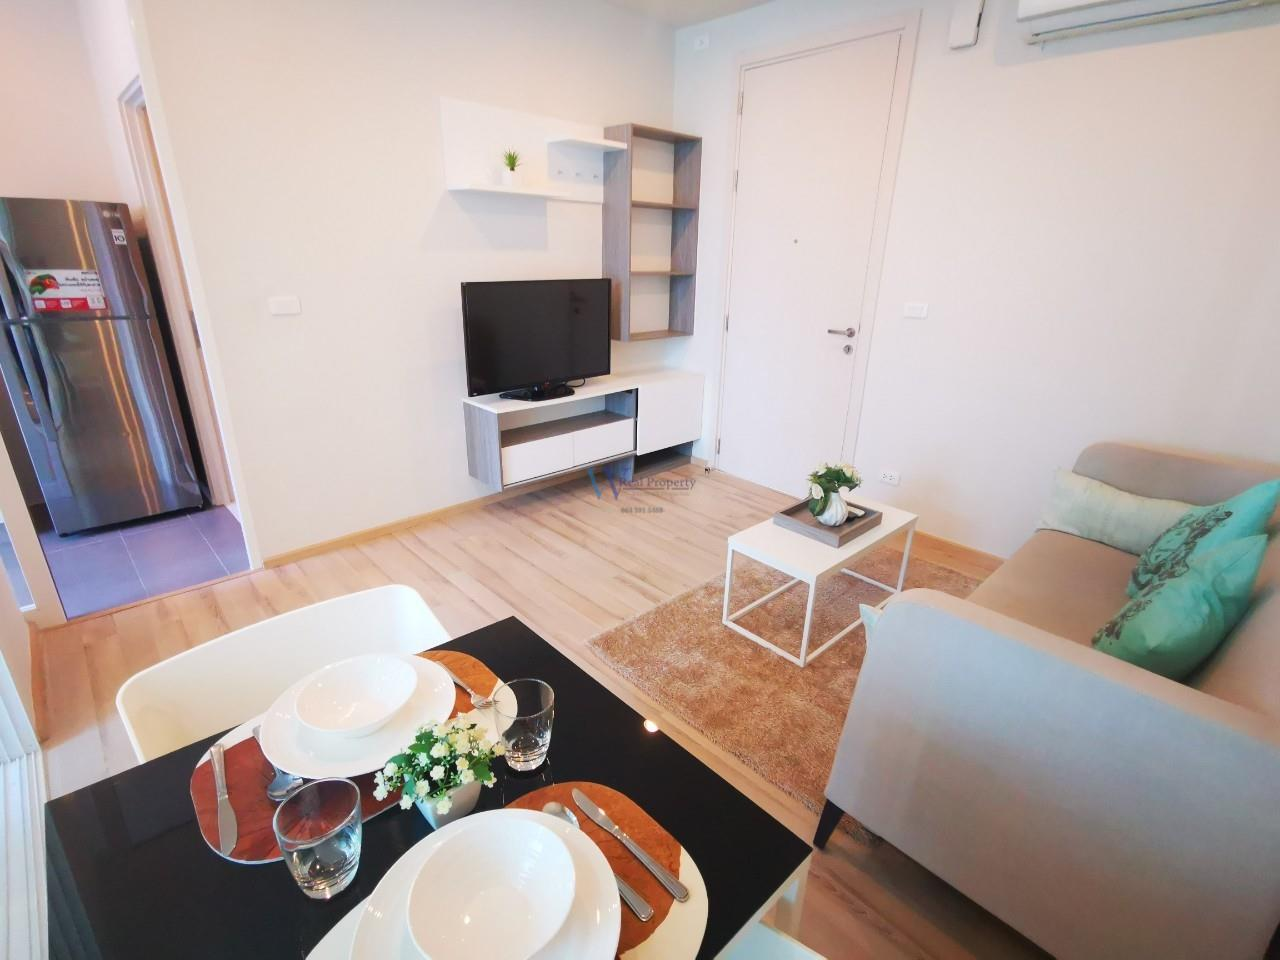 W Real Property Agency's 1 Bedroom Condo for rent in The Base Downtown Phuket, Wichit, Phuket 19